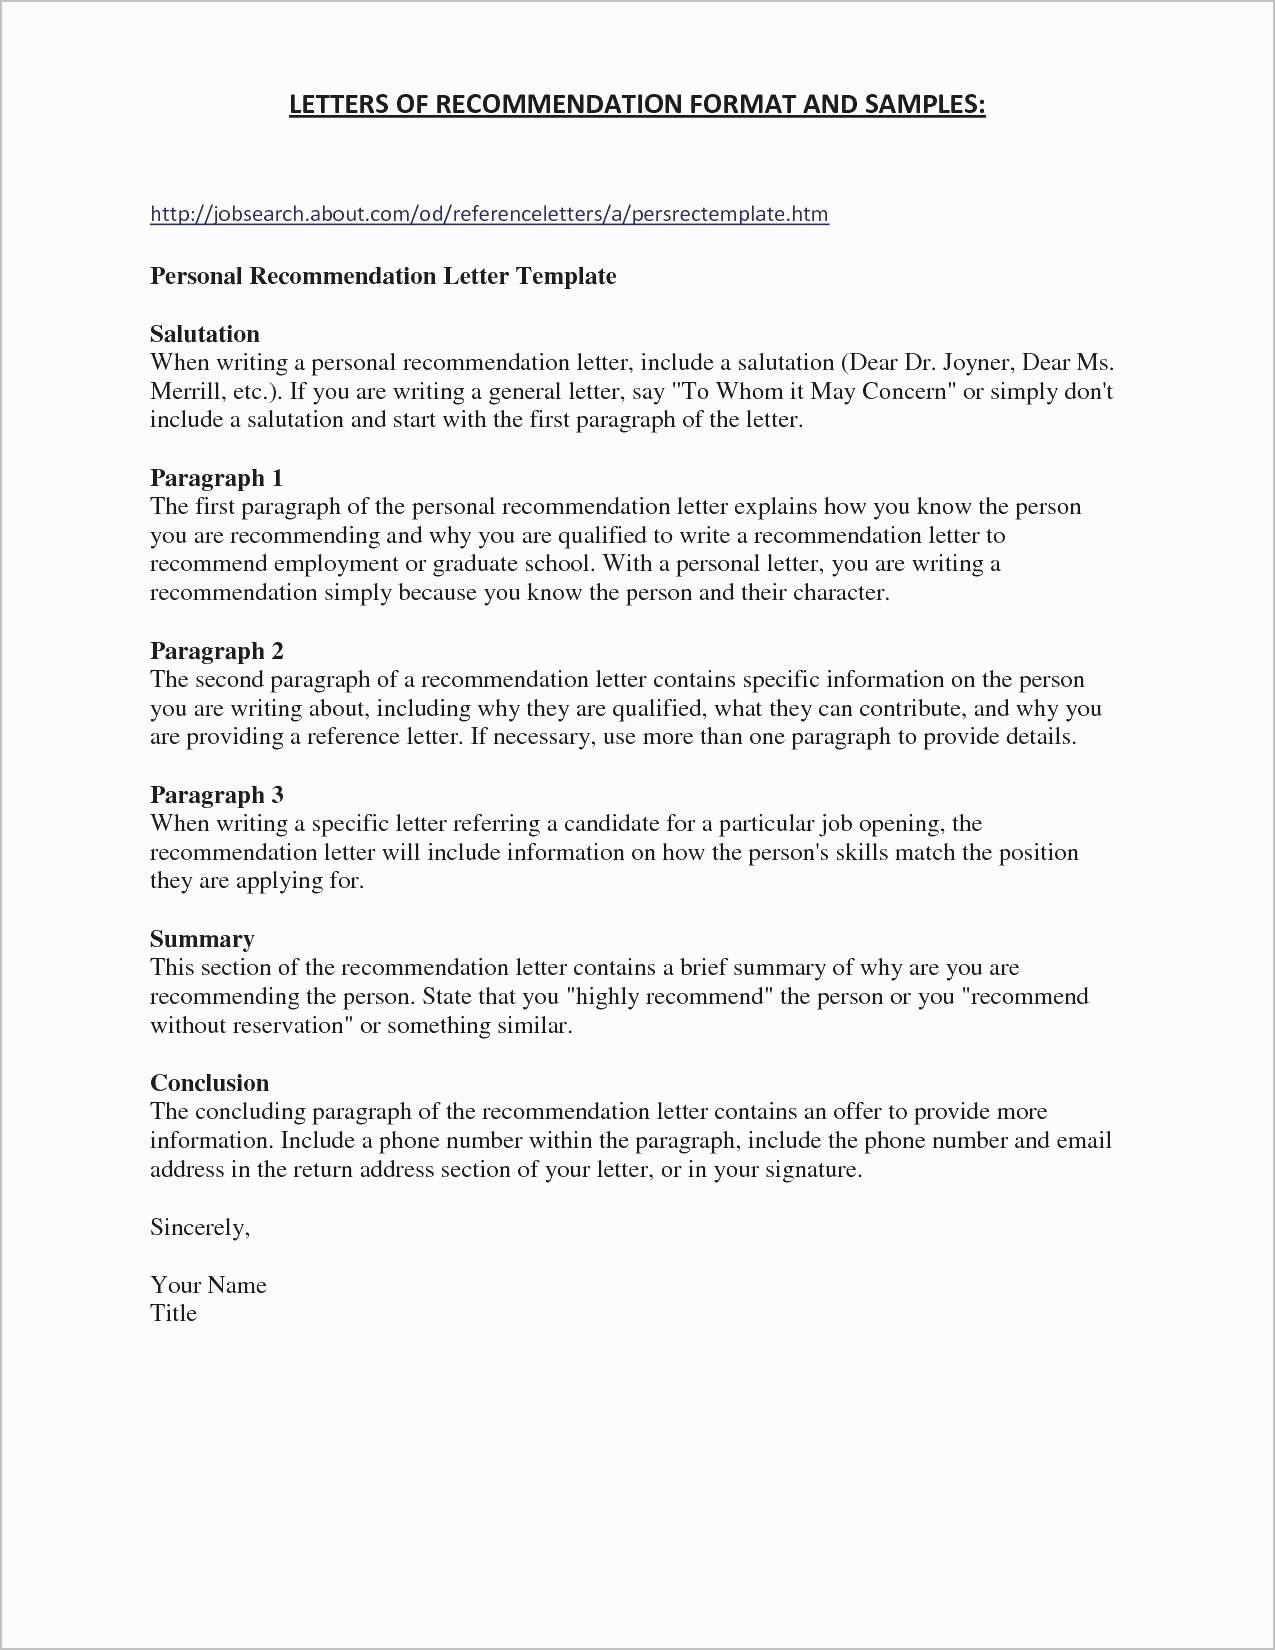 Letter Of Transmittal Template Construction - Sample Transmittal form Template Beautiful Construction Transmittal